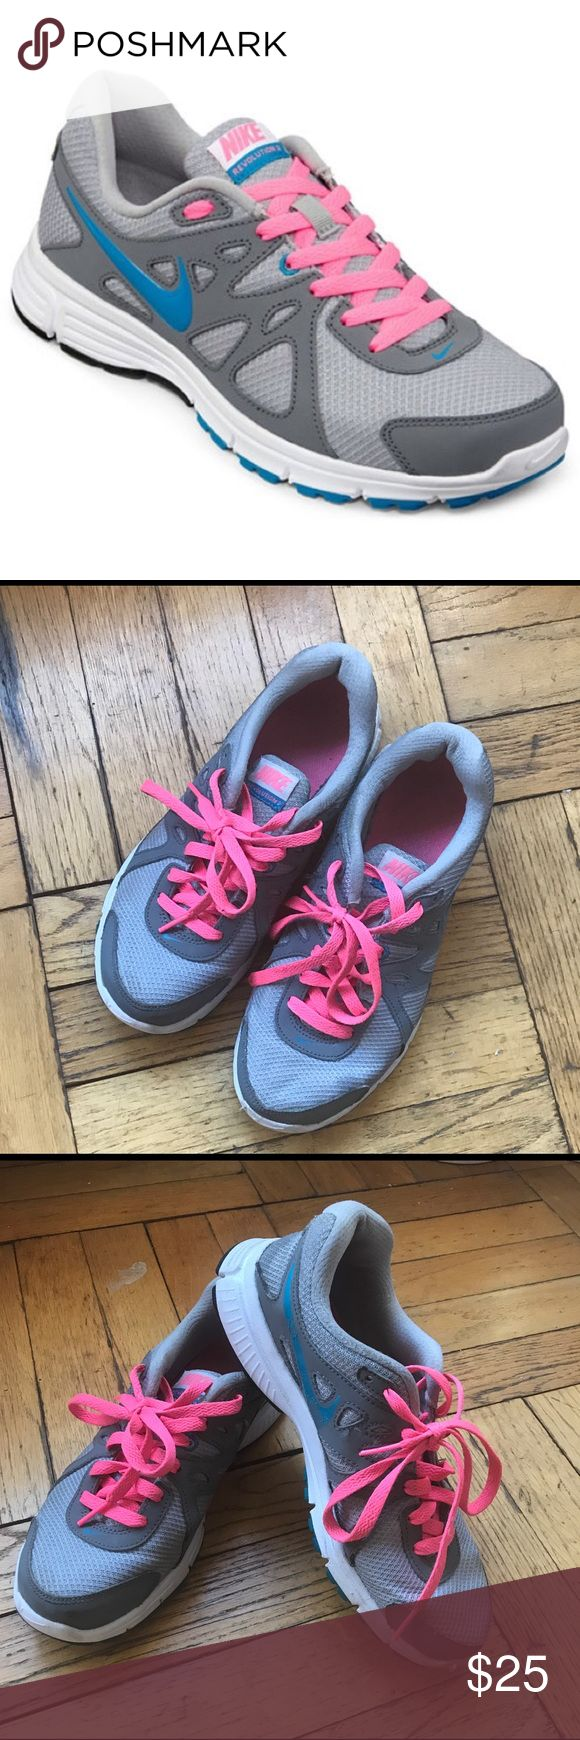 NIKE Revolution 2 Running Sneakers Gently used Nike Revolution 2 running sneakers. size 7. Gray, blue and pink. Main flaw is the Nike swish on the inside on both shoes is wearing off (pictured). Comes from pet and smoke free home. Nike Shoes Sneakers